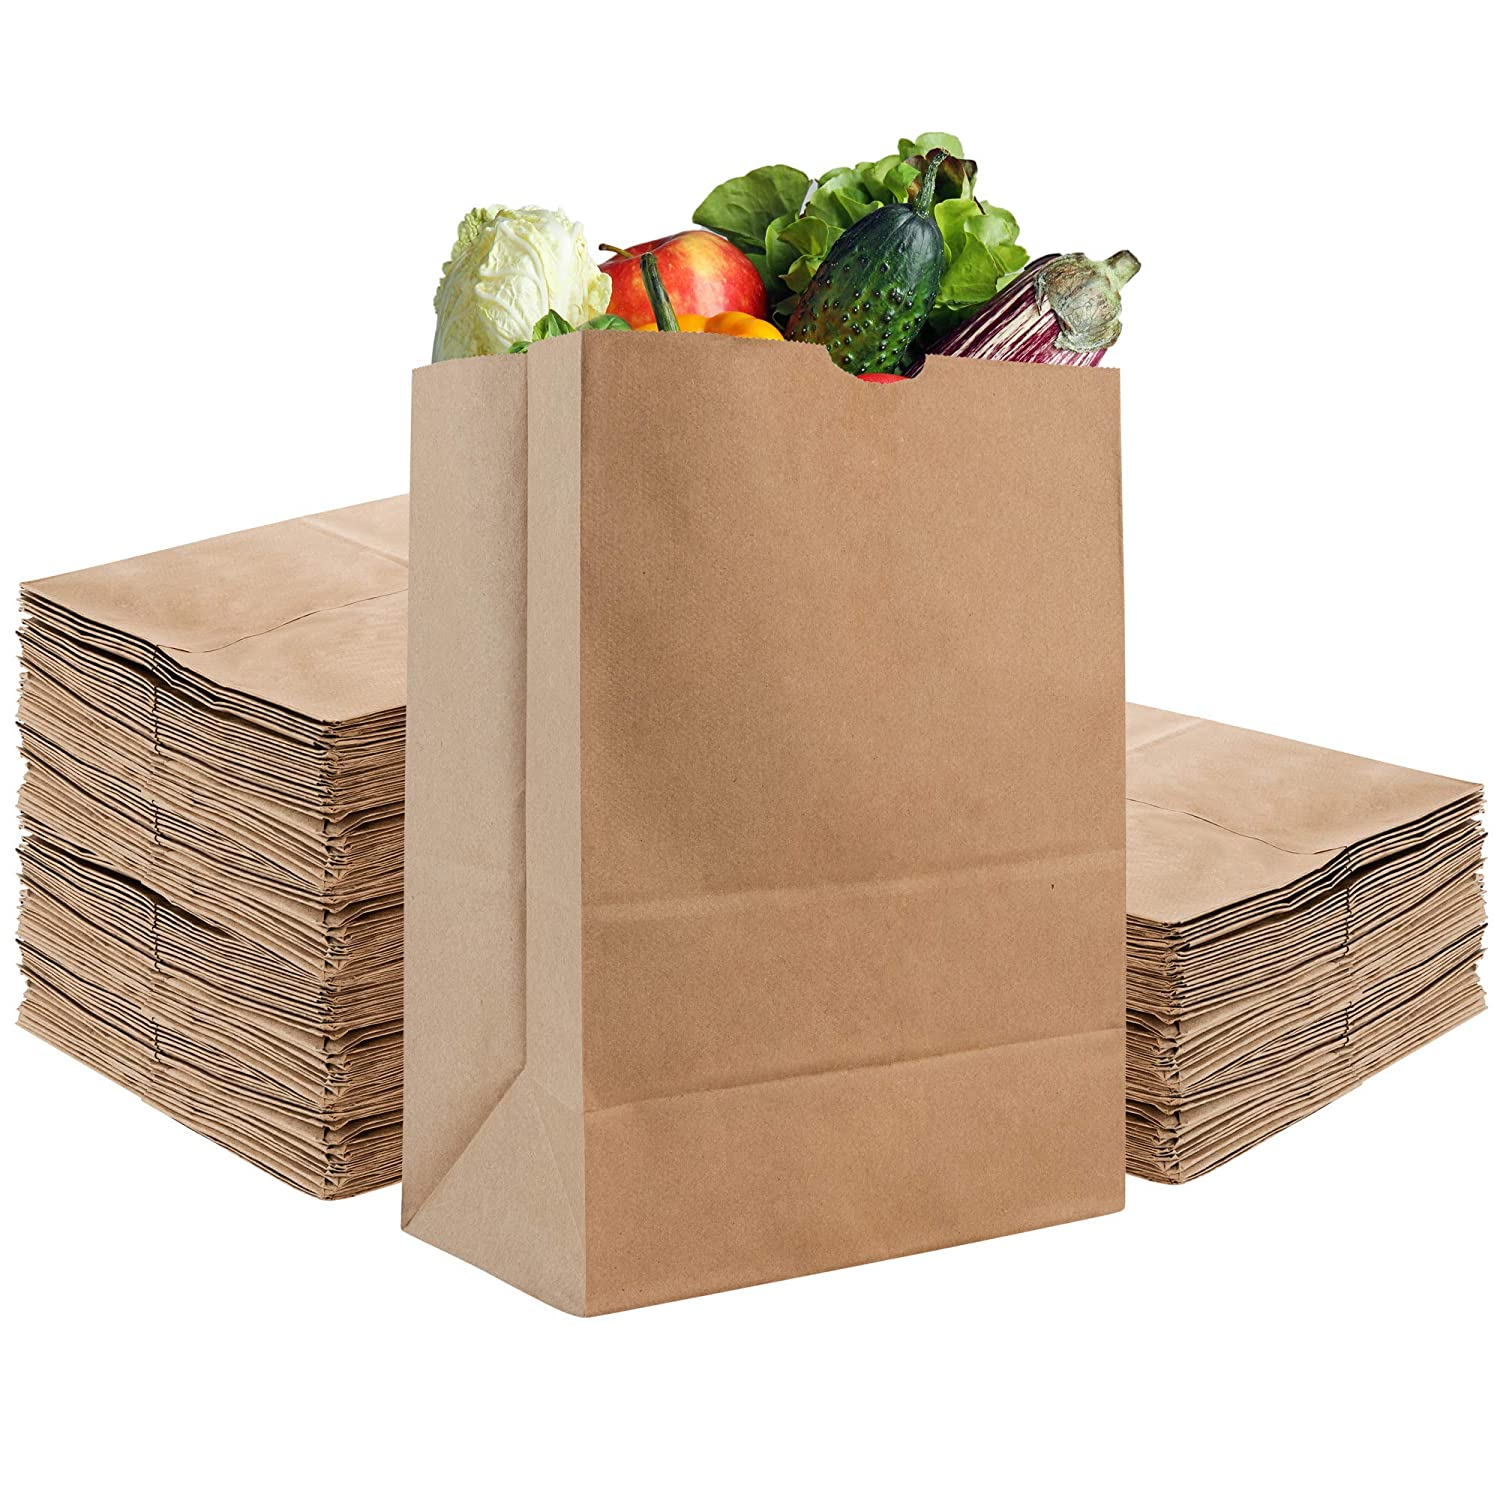 Stock Your Home 52 Lb Kraft Brown Paper Bags (100 Count) - Kraft Brown Paper Grocery Bags Bulk - Large Paper Bags for Grocery Shopping